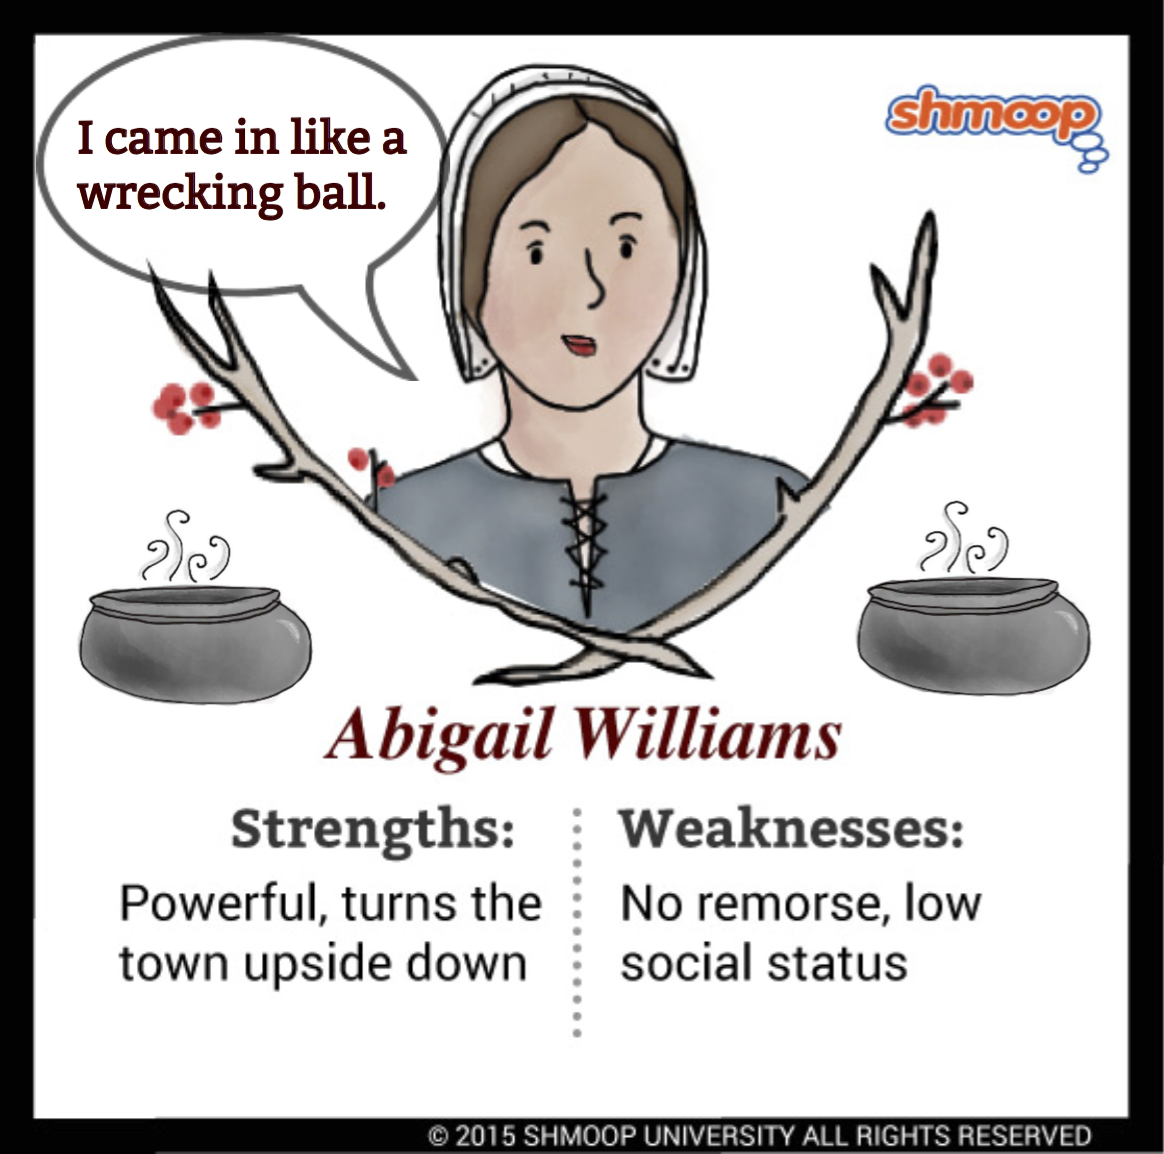 the crucible character essay abigail williams Abigail williams essays: abigail williams in the crucible the character i dislike the most is abigail williams because abigail is the kind of person who.